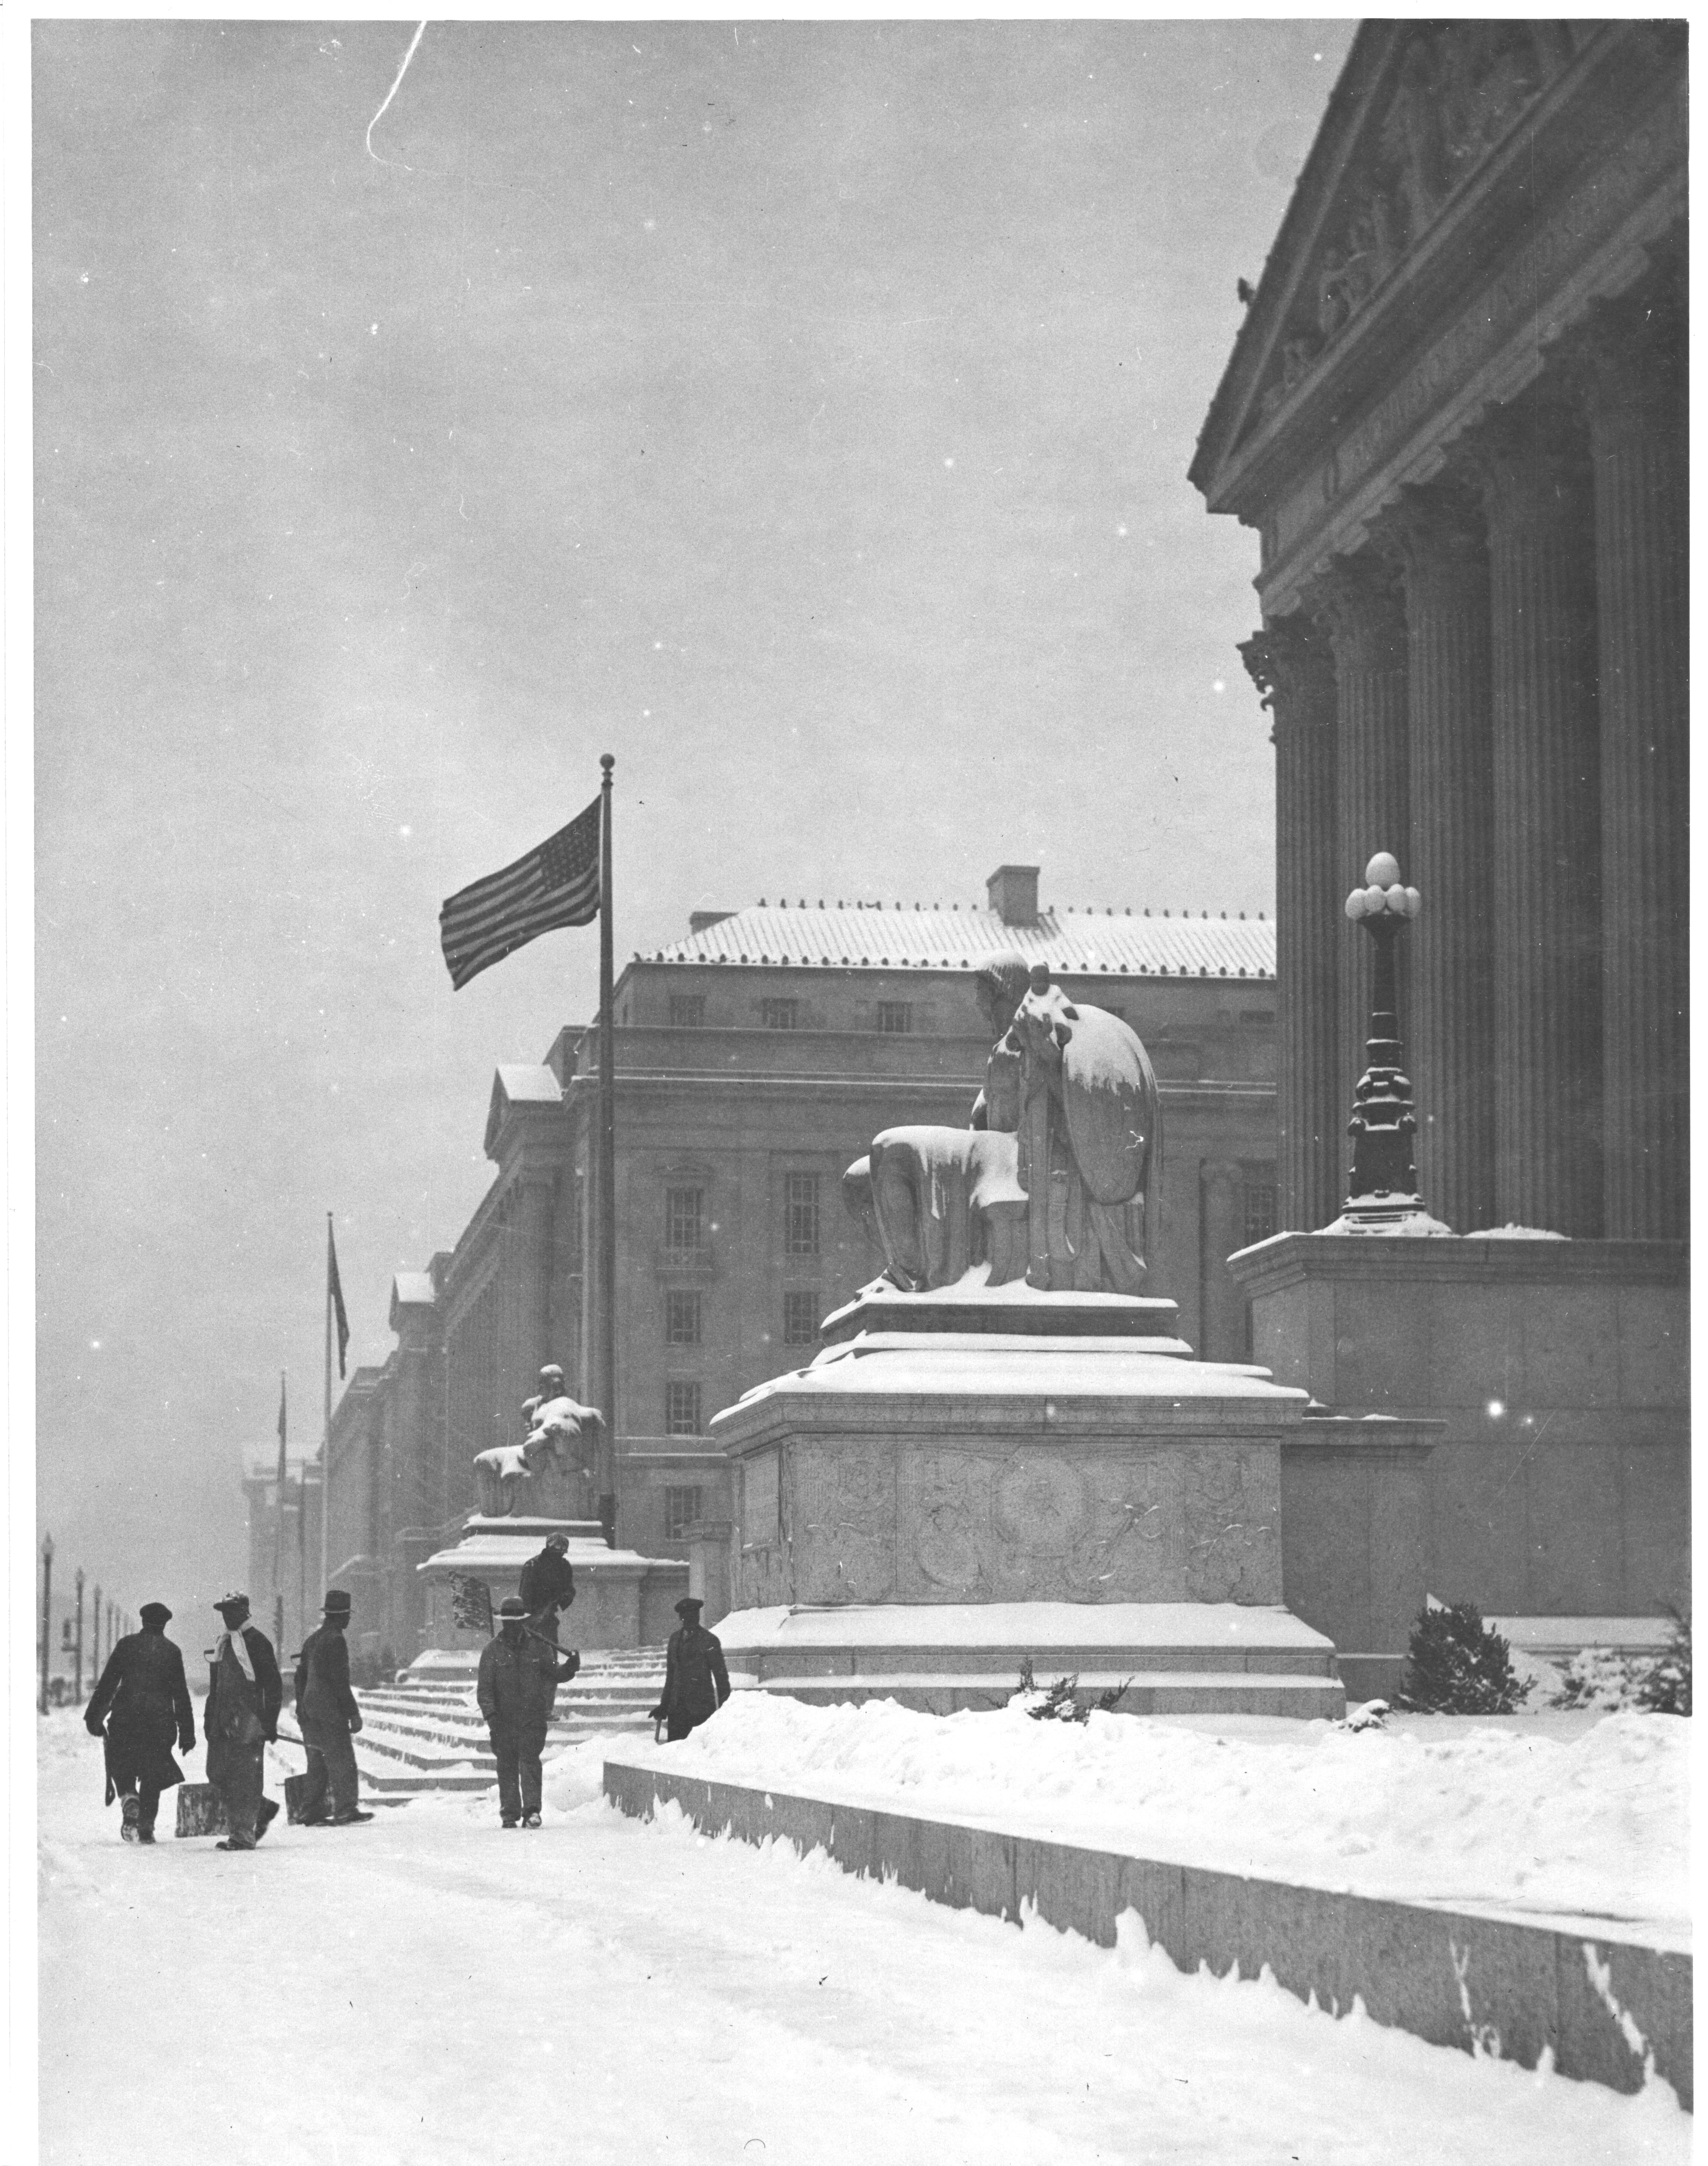 Photograph of Workers Shoveling Snow from the National Archives Building Constitution Avenue Entrance , 01/02/1936